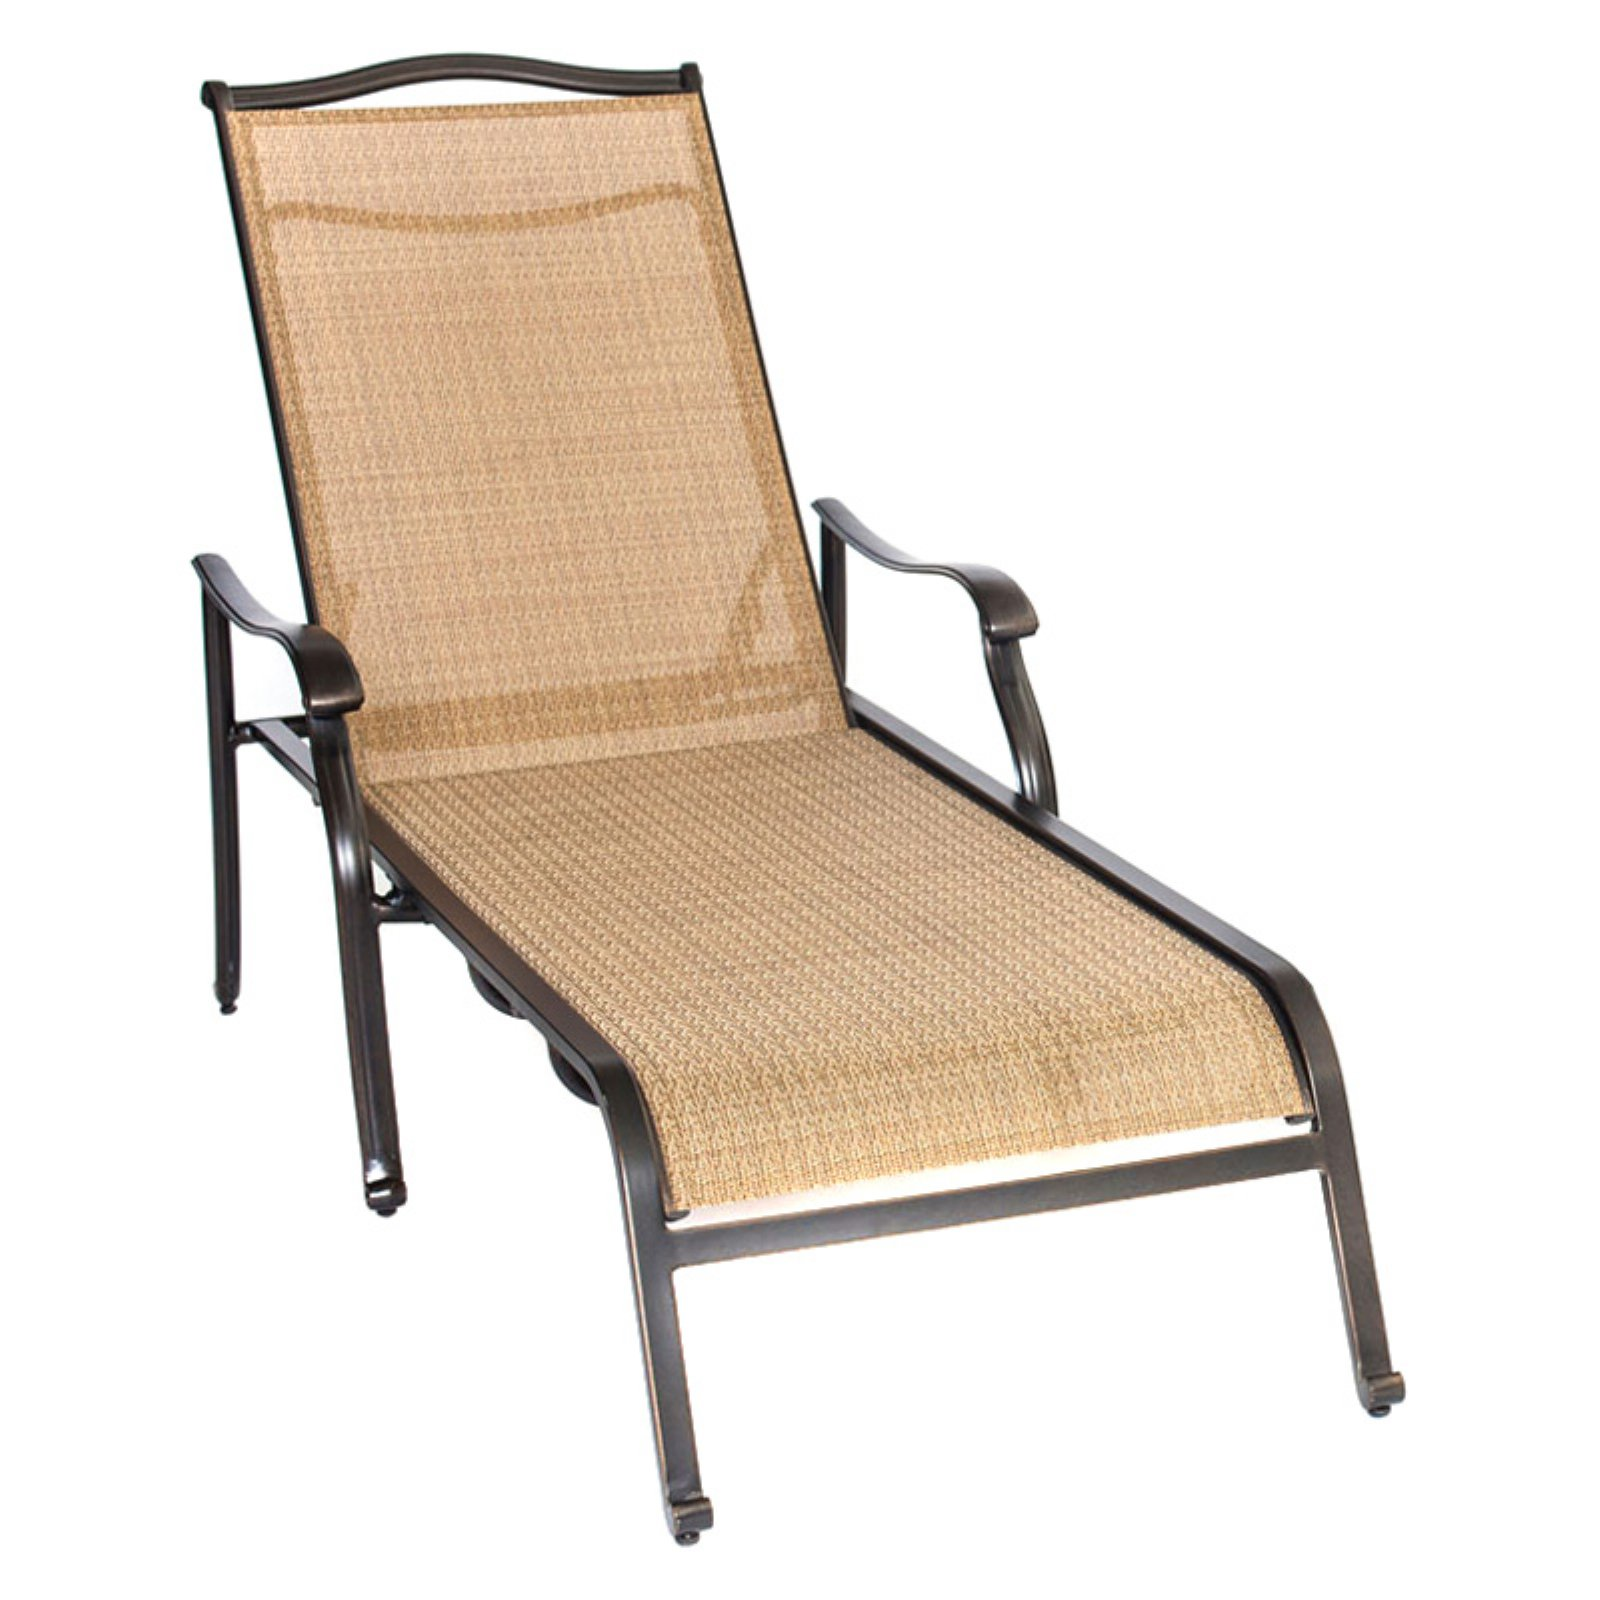 Hanover Outdoor Monaco Chaise Lounge Chair by Chaise Lounges